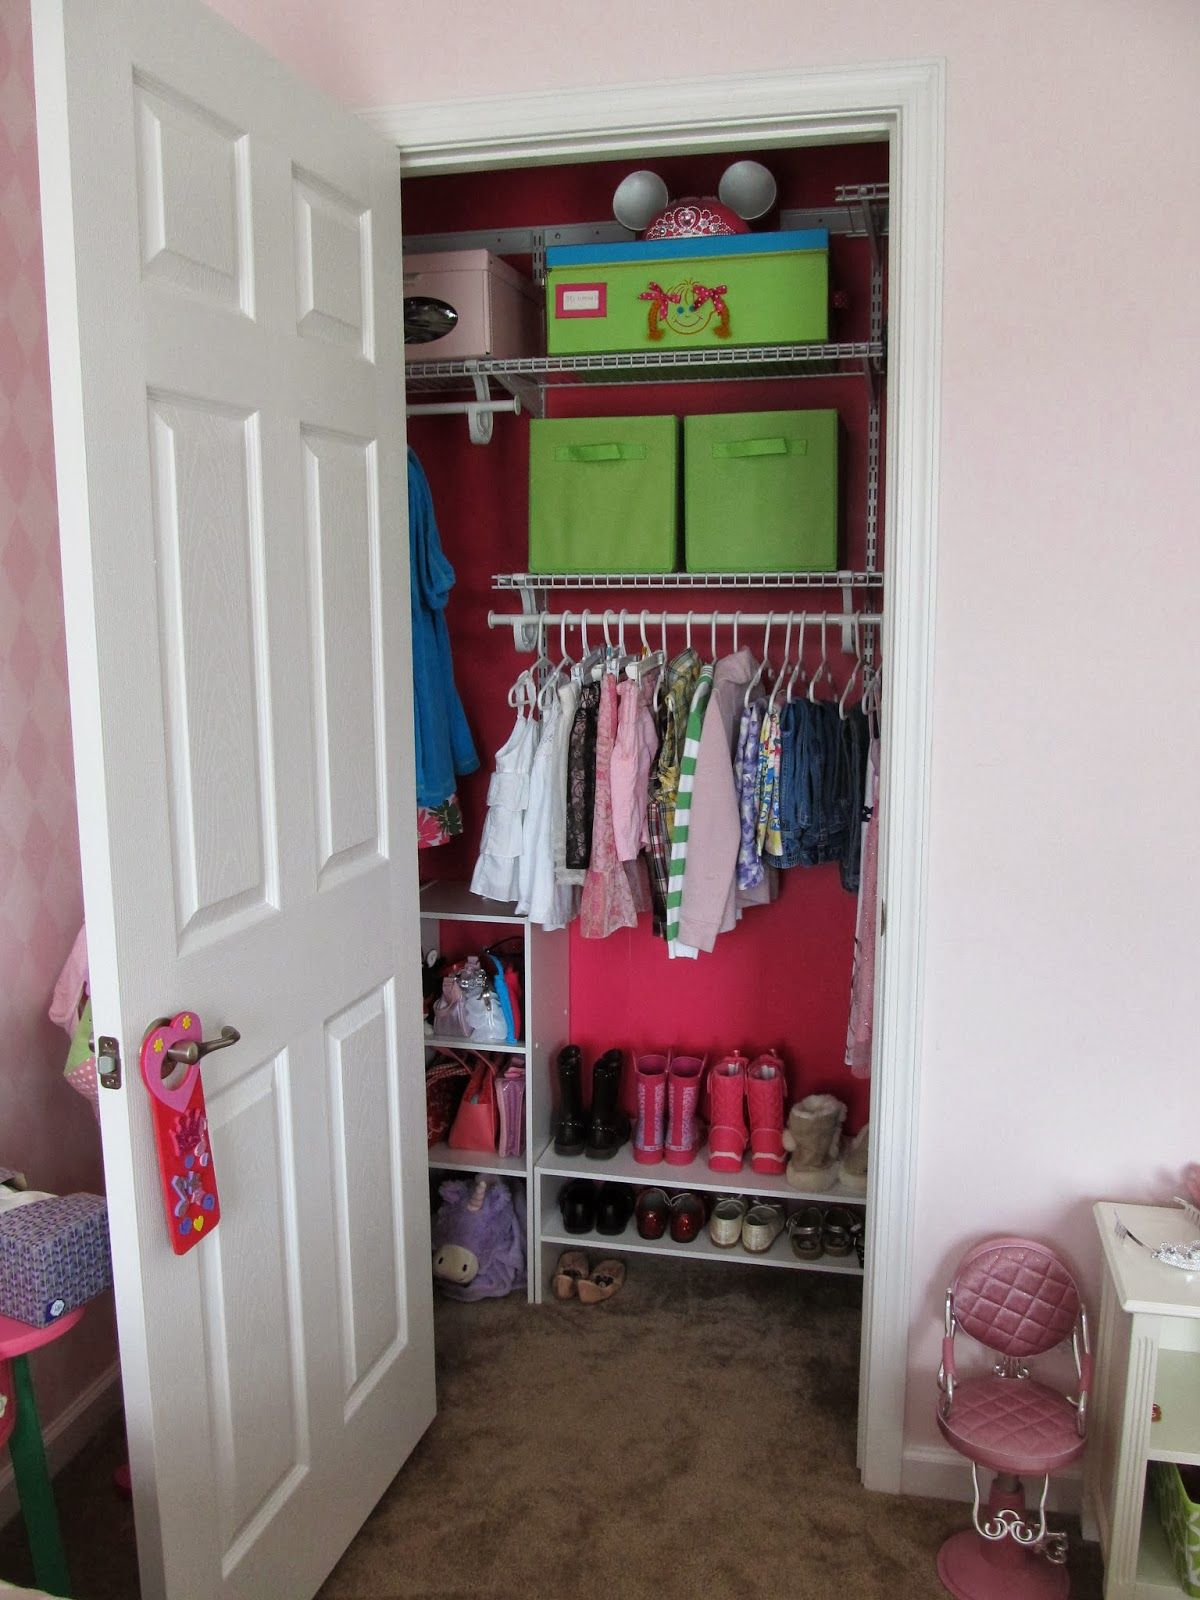 60 Pounds of Pancakes: Kid's Small Closet Revamp | Closet ...